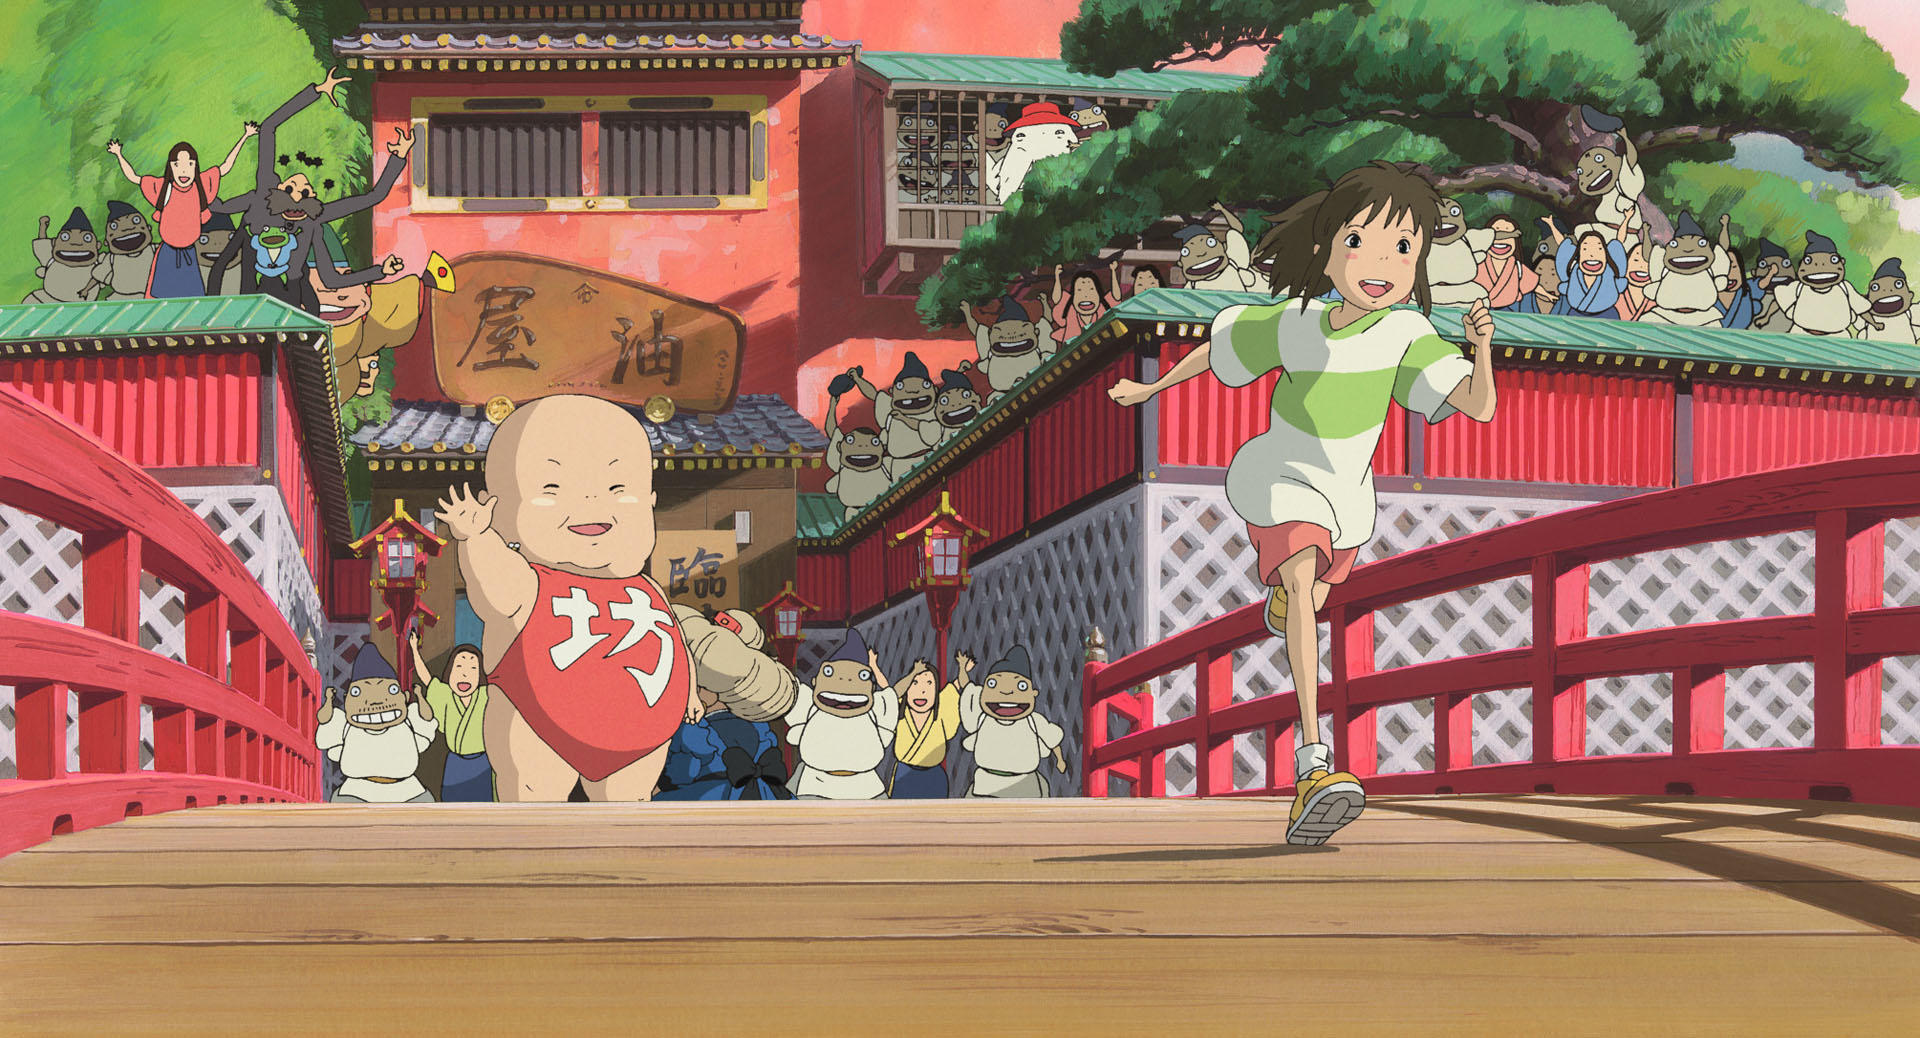 Studio Ghibli Releases 400 Images From Eight Movies Free To Download Online Soranews24 Japan News